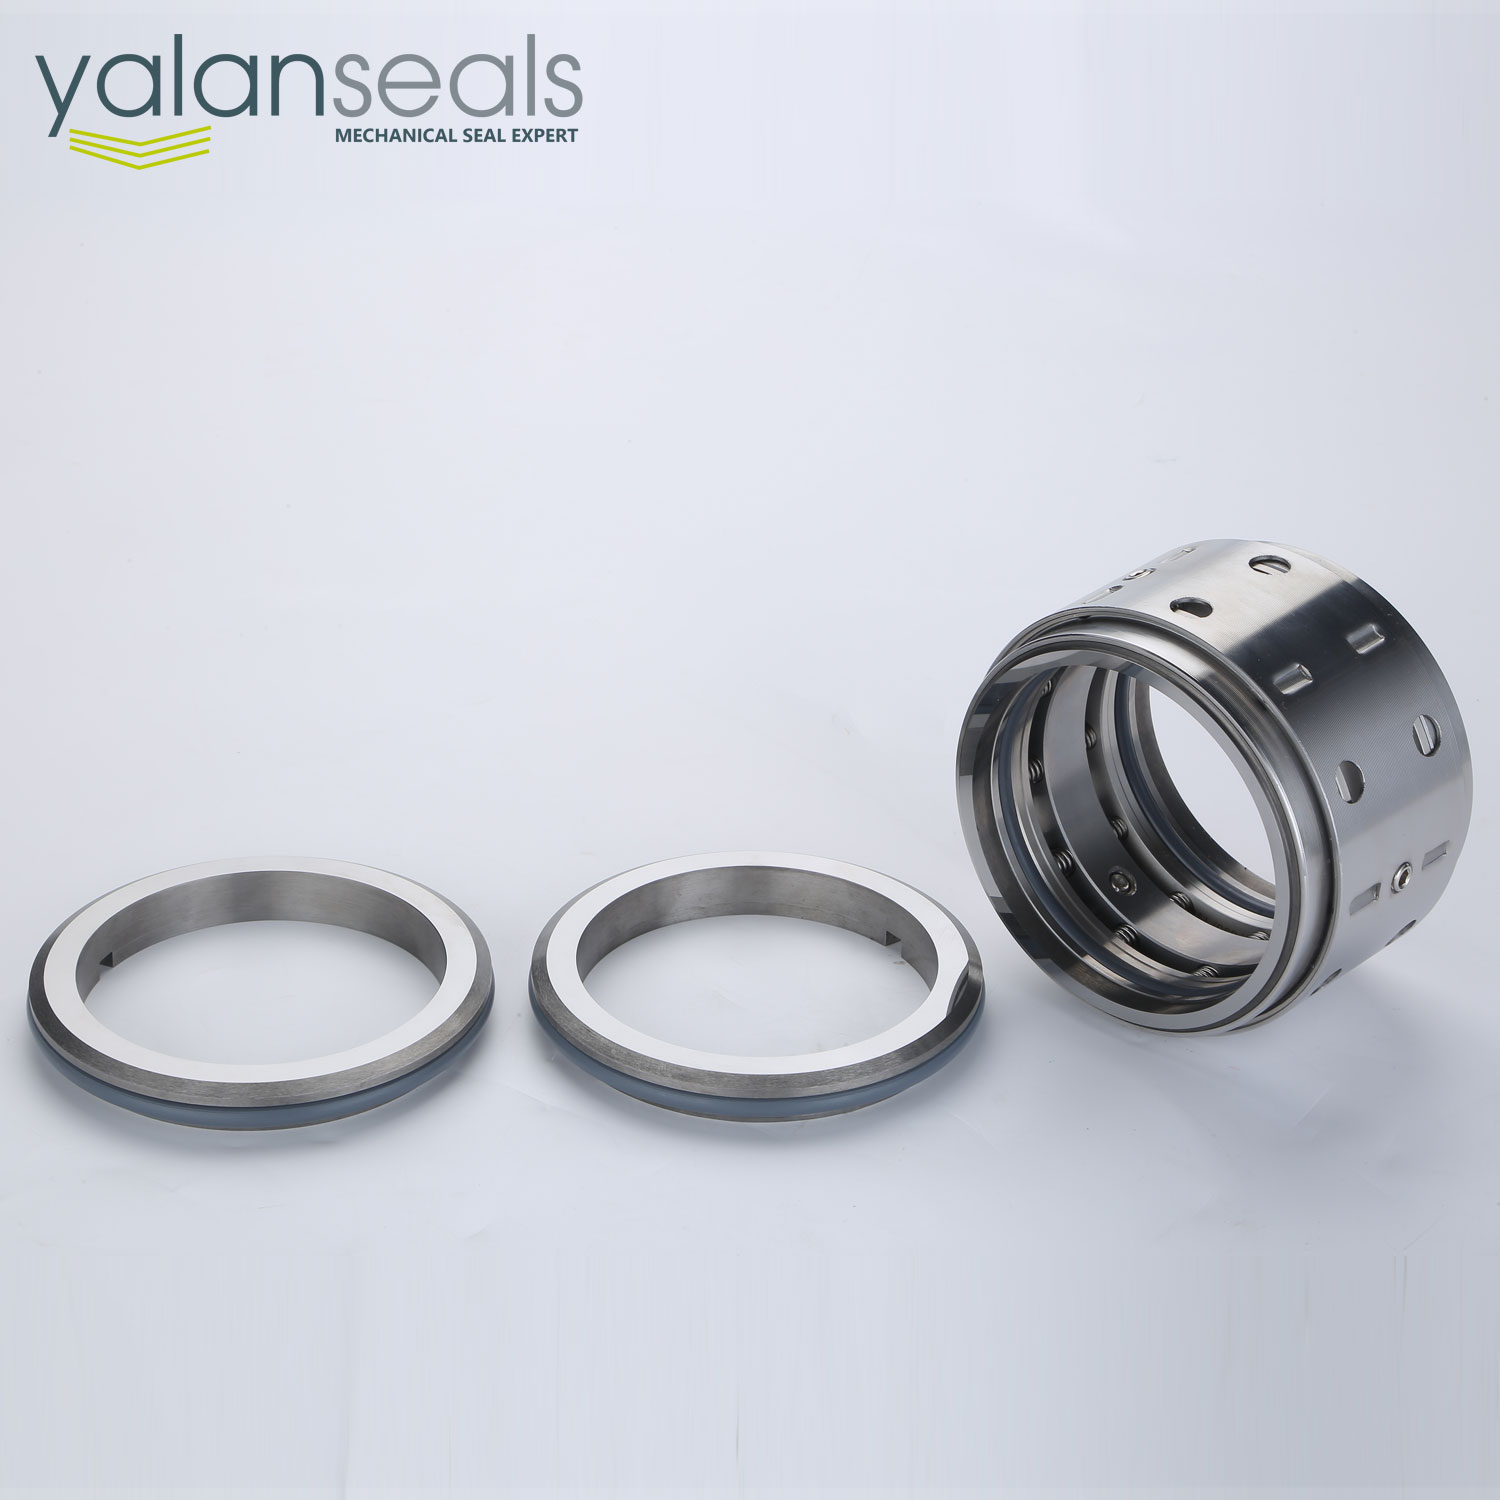 MN206 Mechanical Seal for Slurry Pumps and Desulphurization Pumps